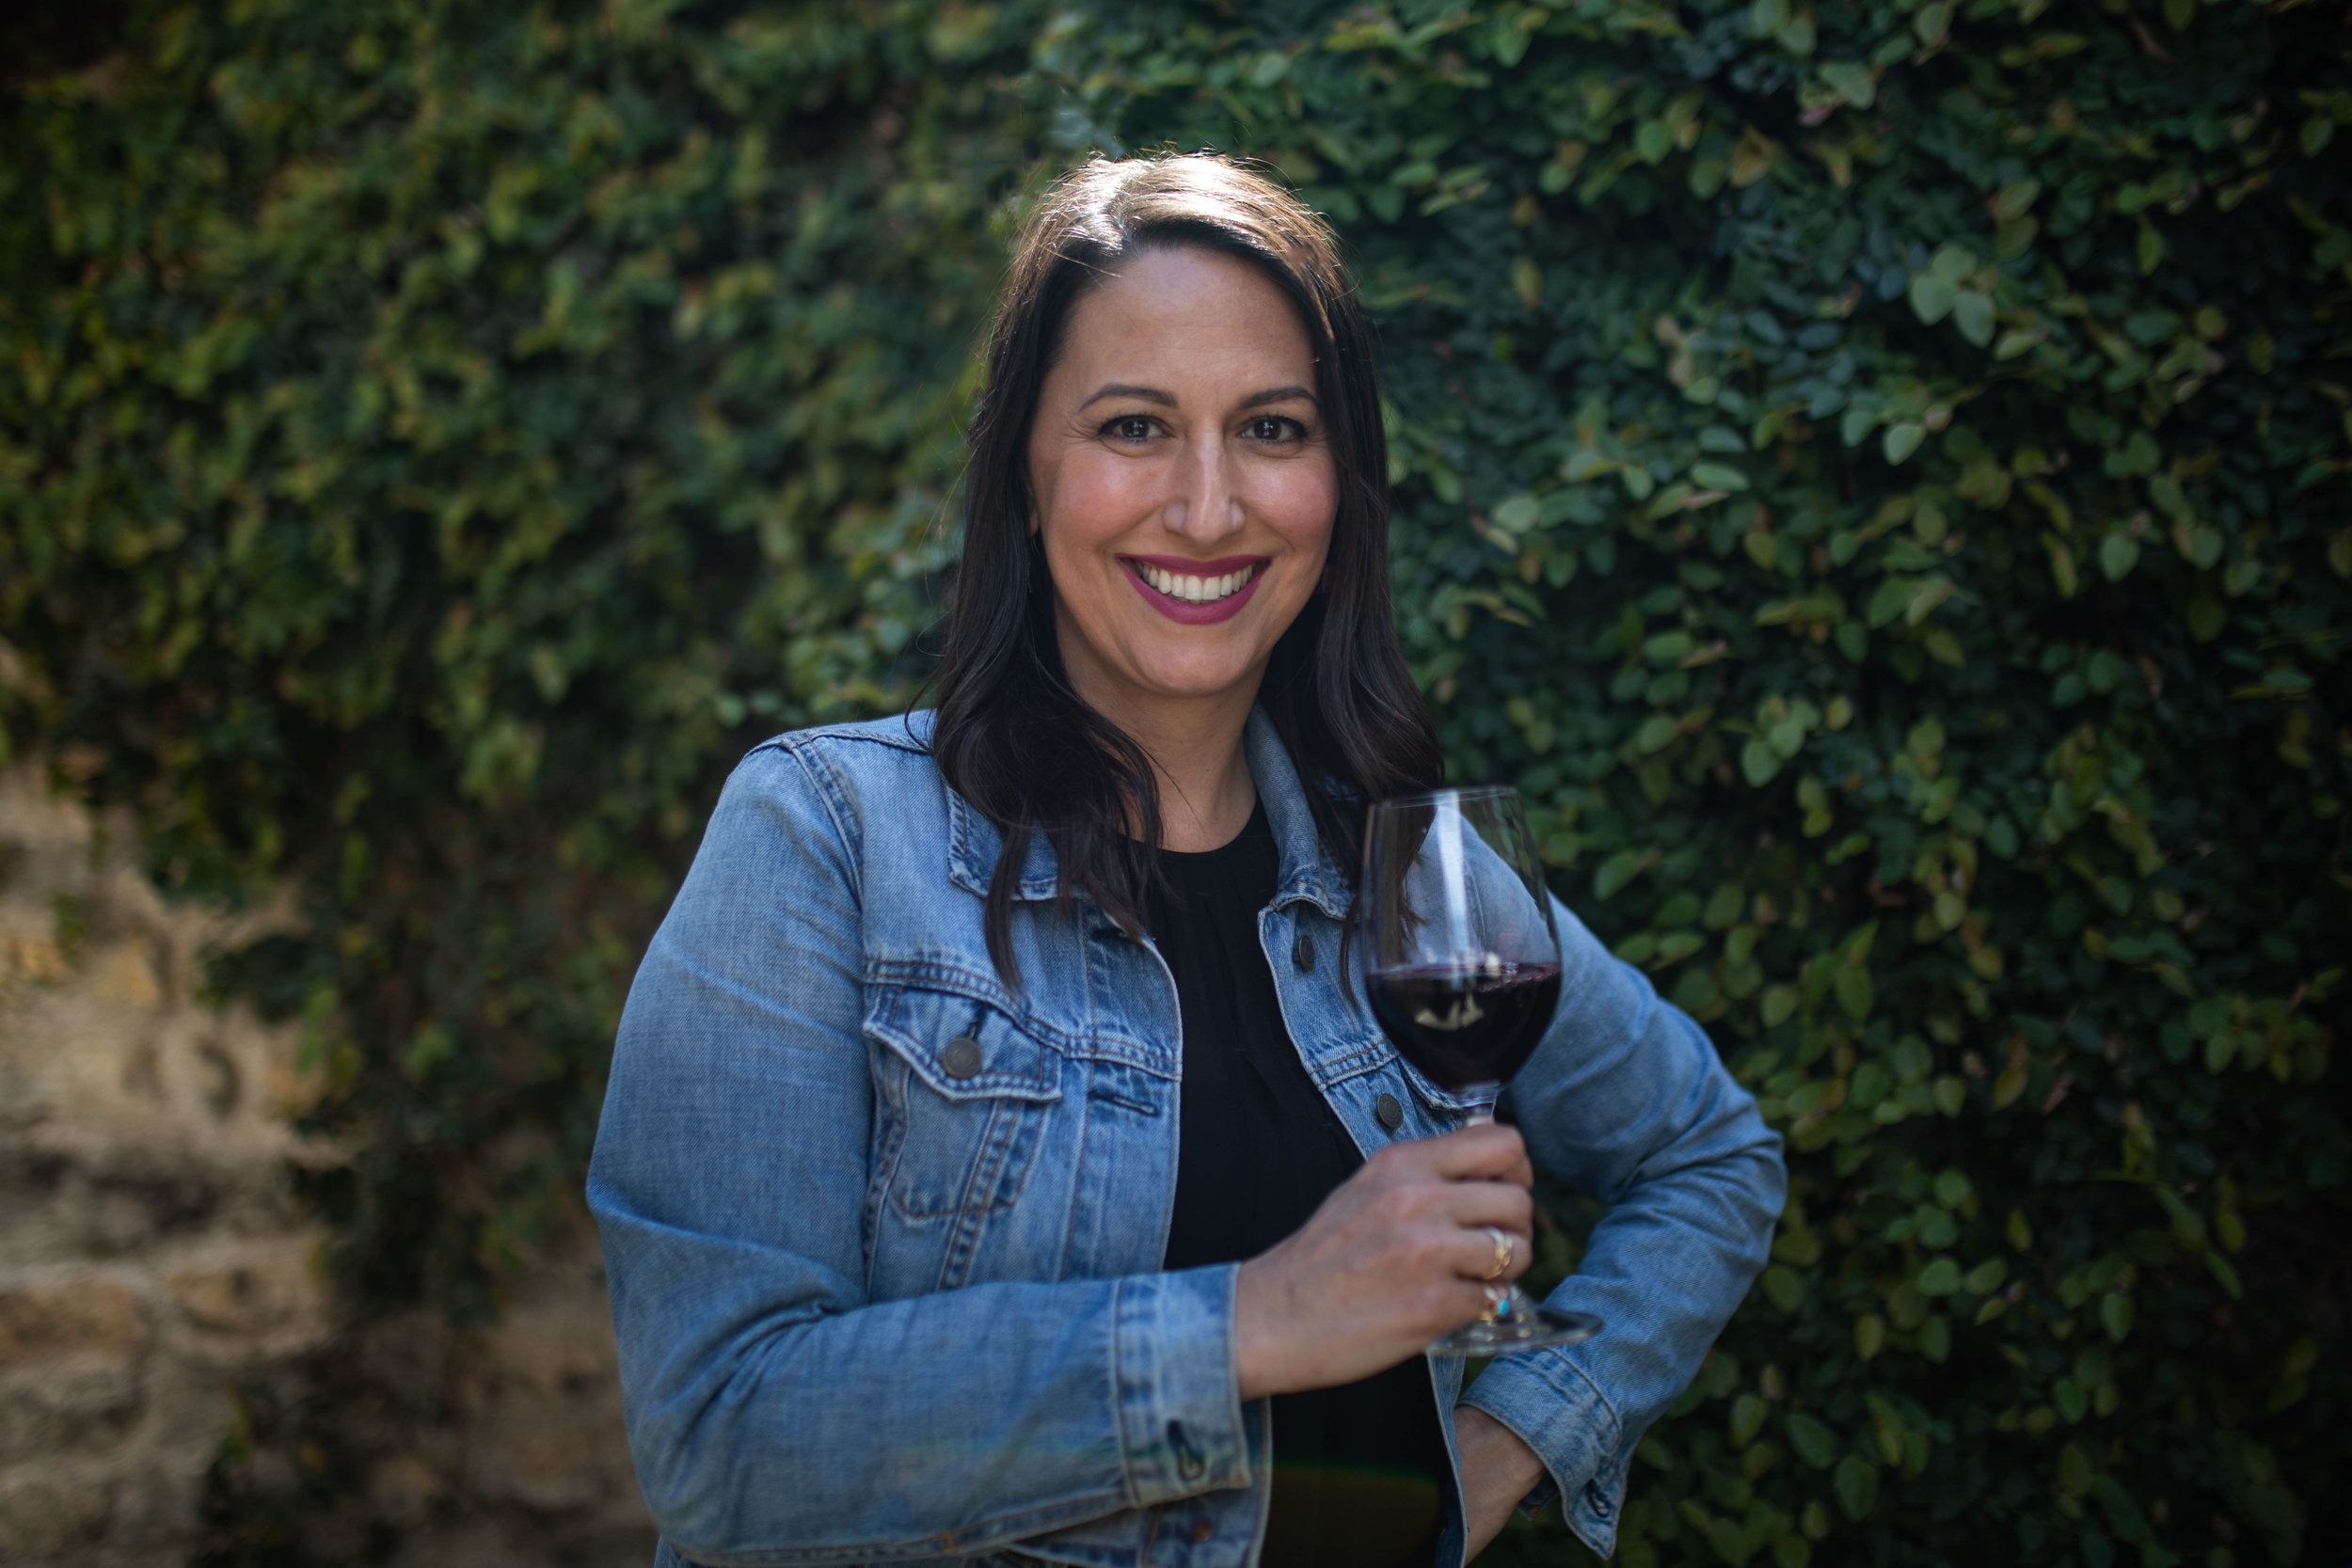 SANDRA SPALDING, 5.10.19 - Sandra Spalding oversees 93 stores as the Director of Marketing and Community for Twin Liquor's, in addition to running the company's Wine Academy.